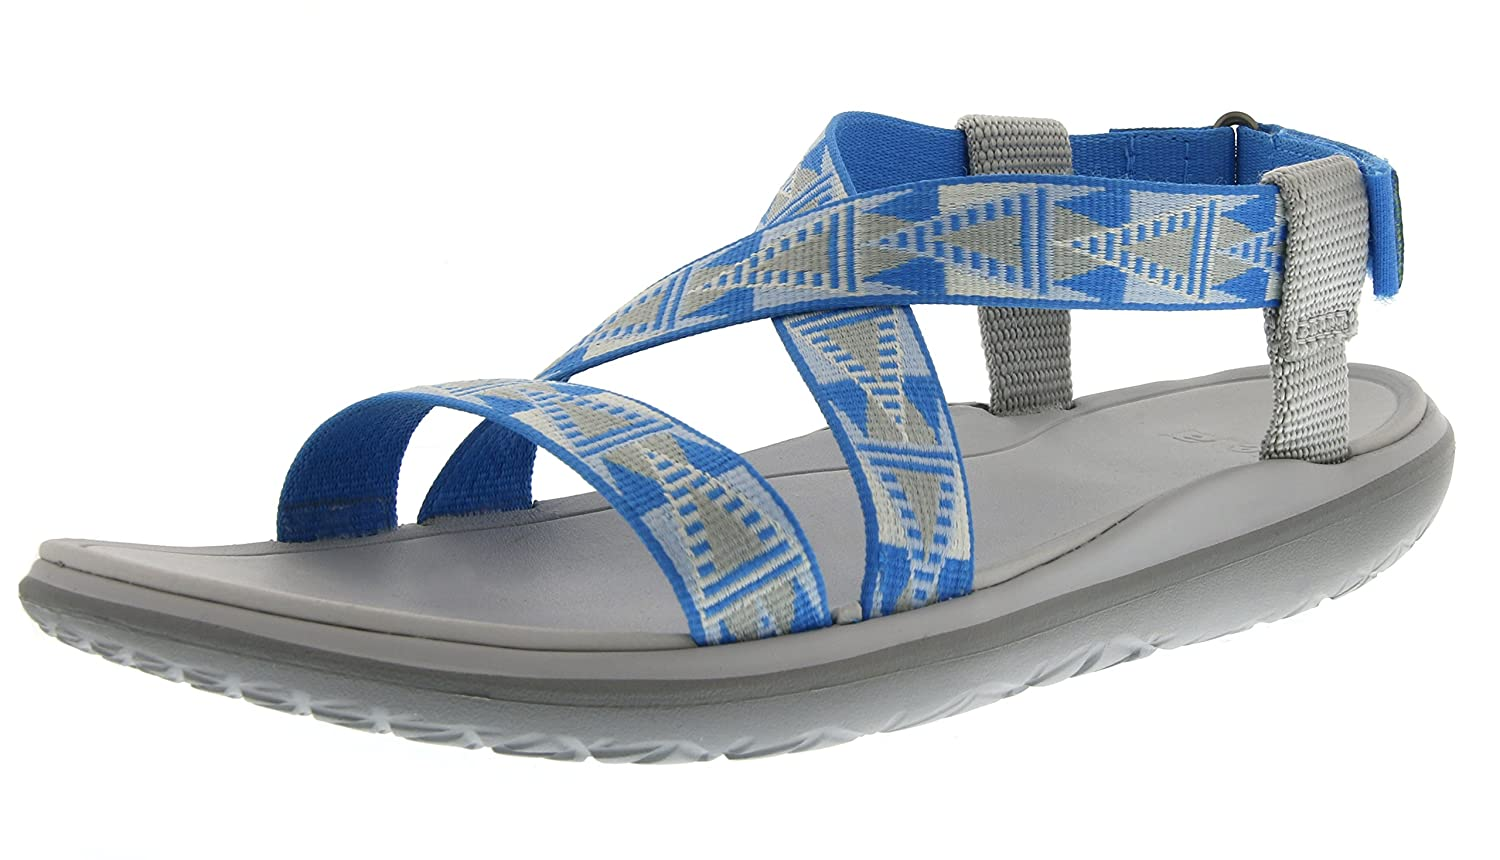 Teva Women's Terra-Float Livia Sandal B00ZFMC6O6 10.5 B(M) US|Grey/Blue